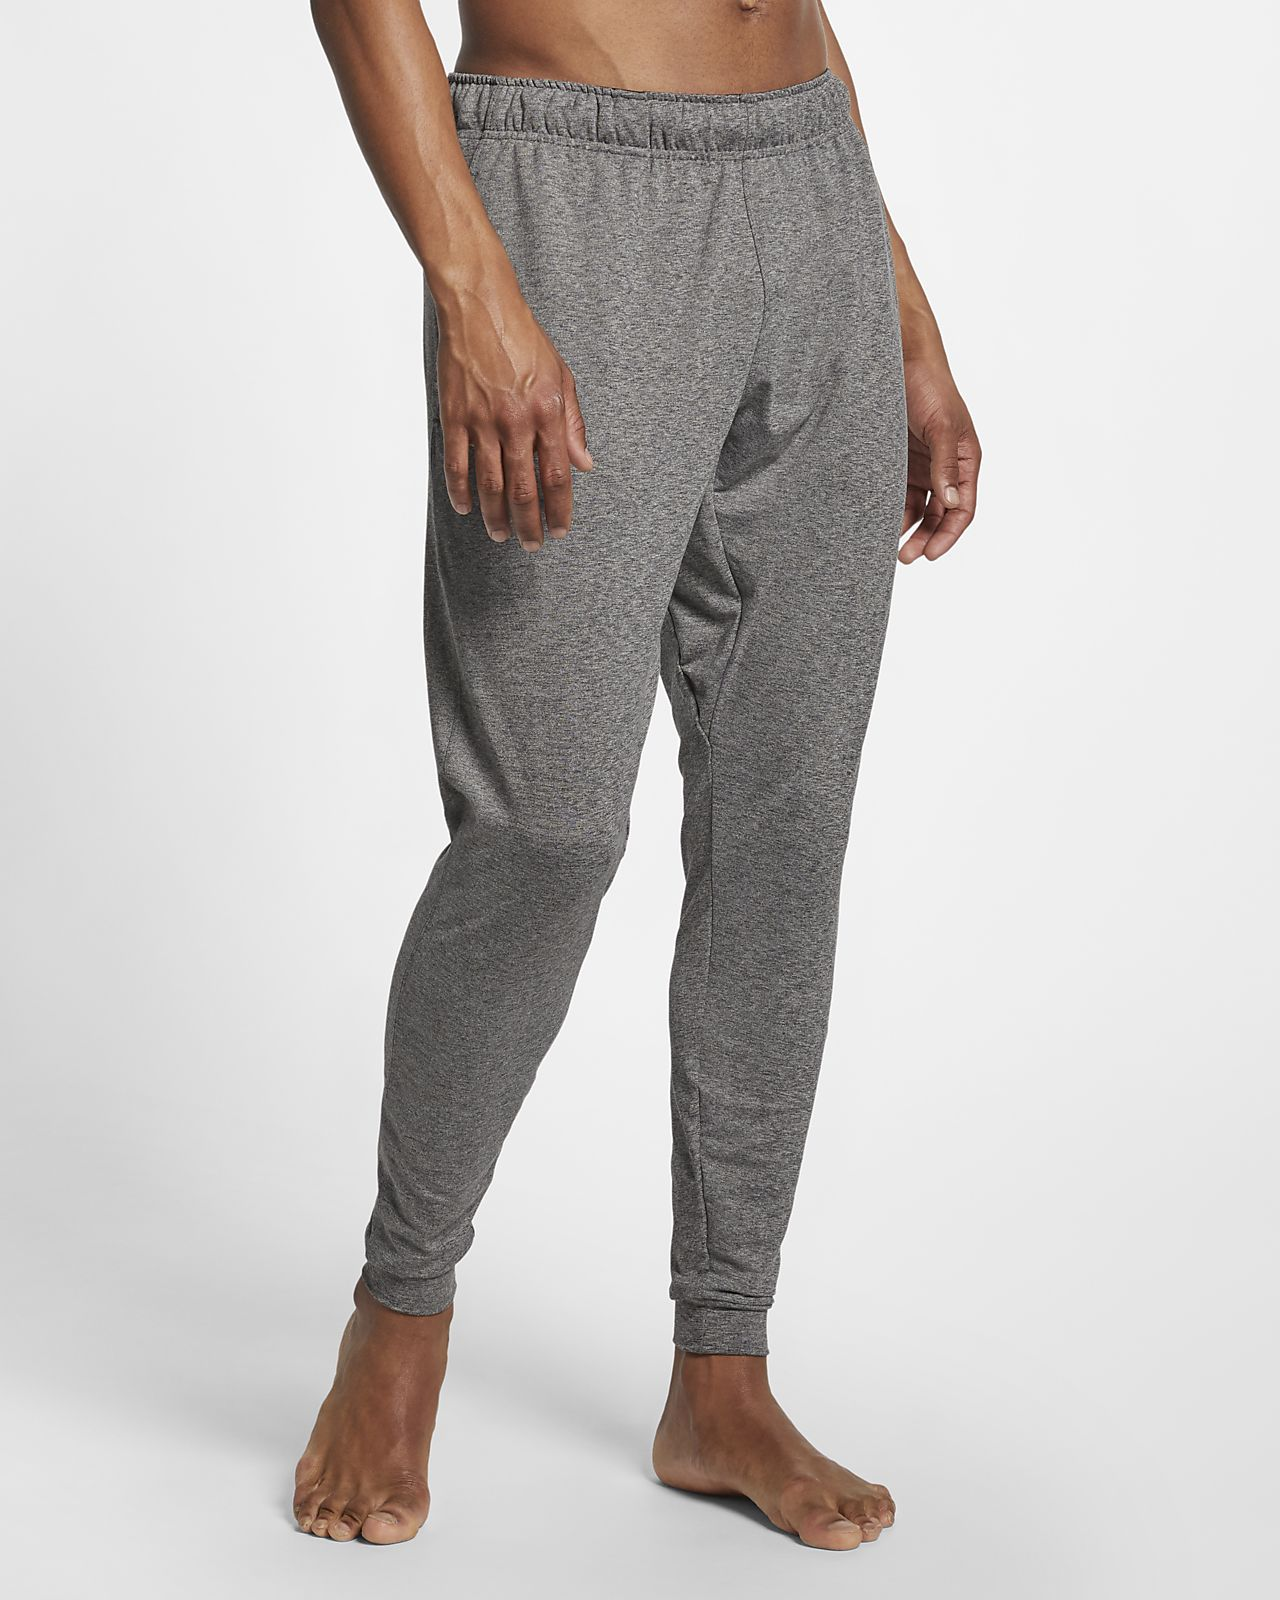 Nike Dri-FIT Yogabroek voor heren